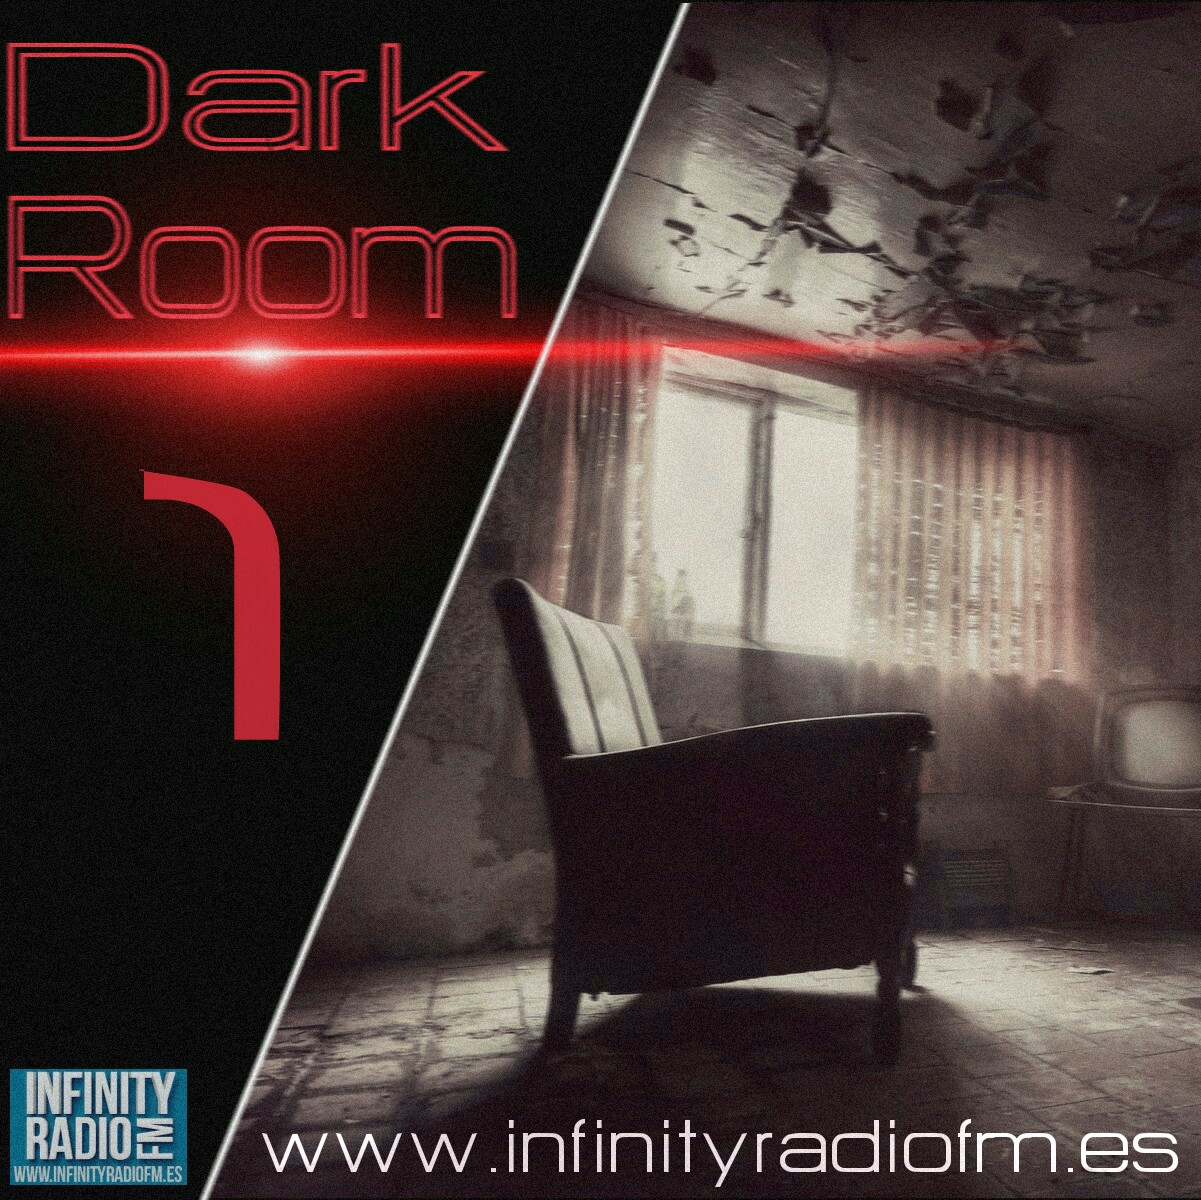 David Freire - Dark Room #001 [Infinity Radio] ()